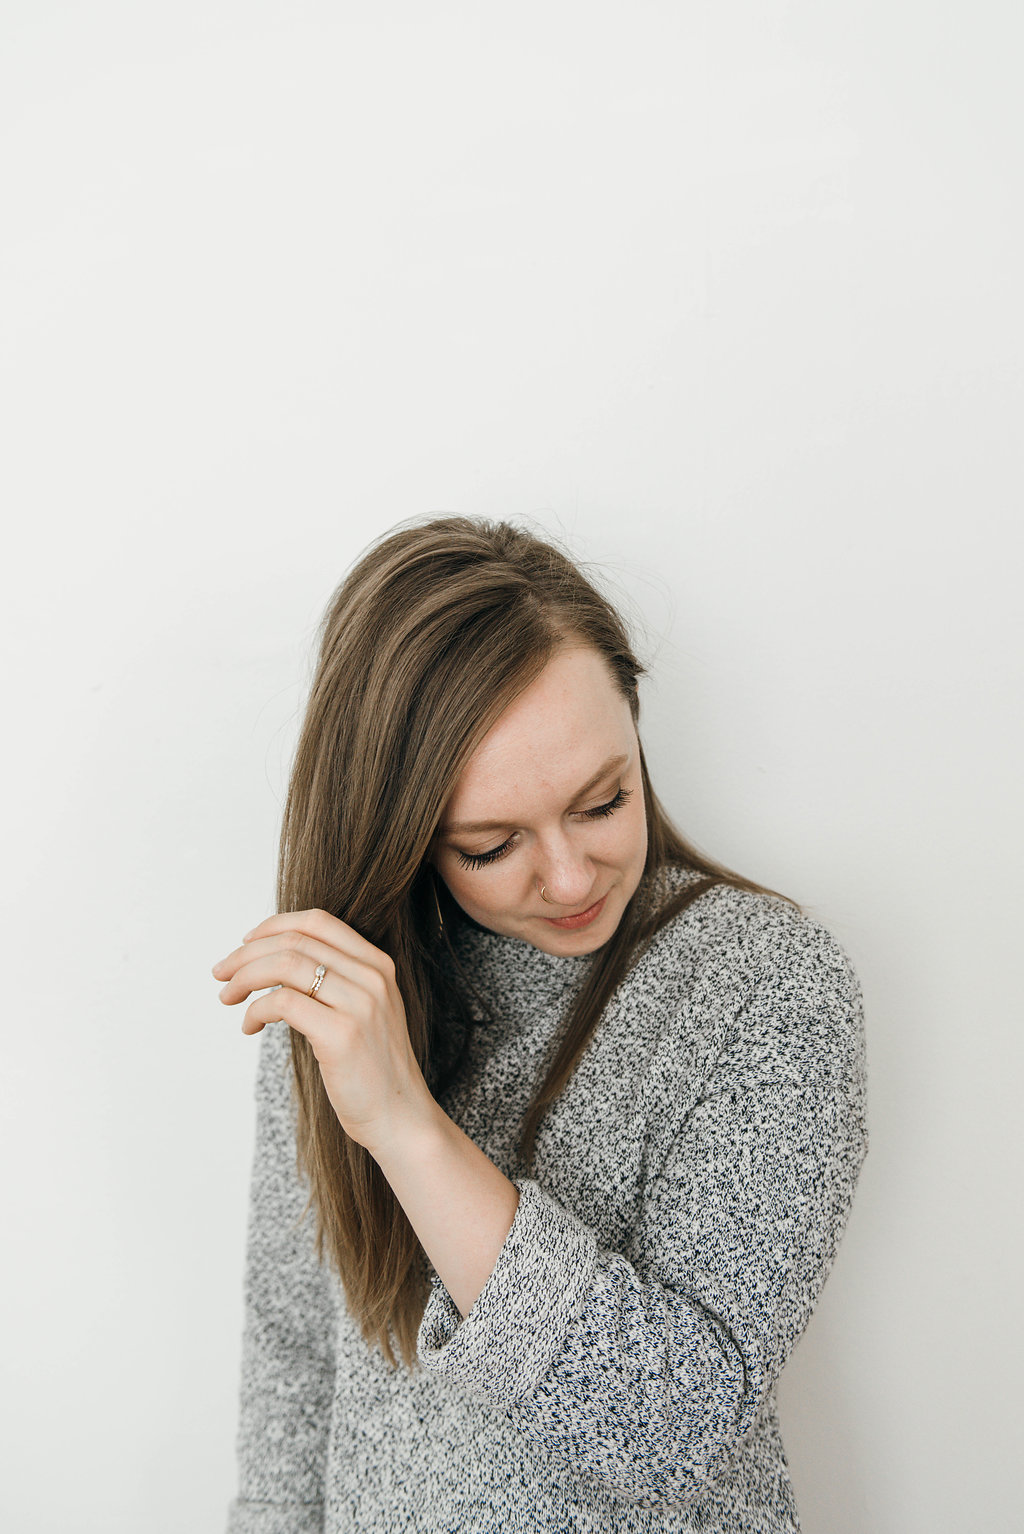 Wholehearted Wednesdays with Andrea Crouse |Interview Series | Self-Care | Community | Female Empowerment | Women | Community Over Competition | Storytelling | Authenticity | Wholehearted Woman